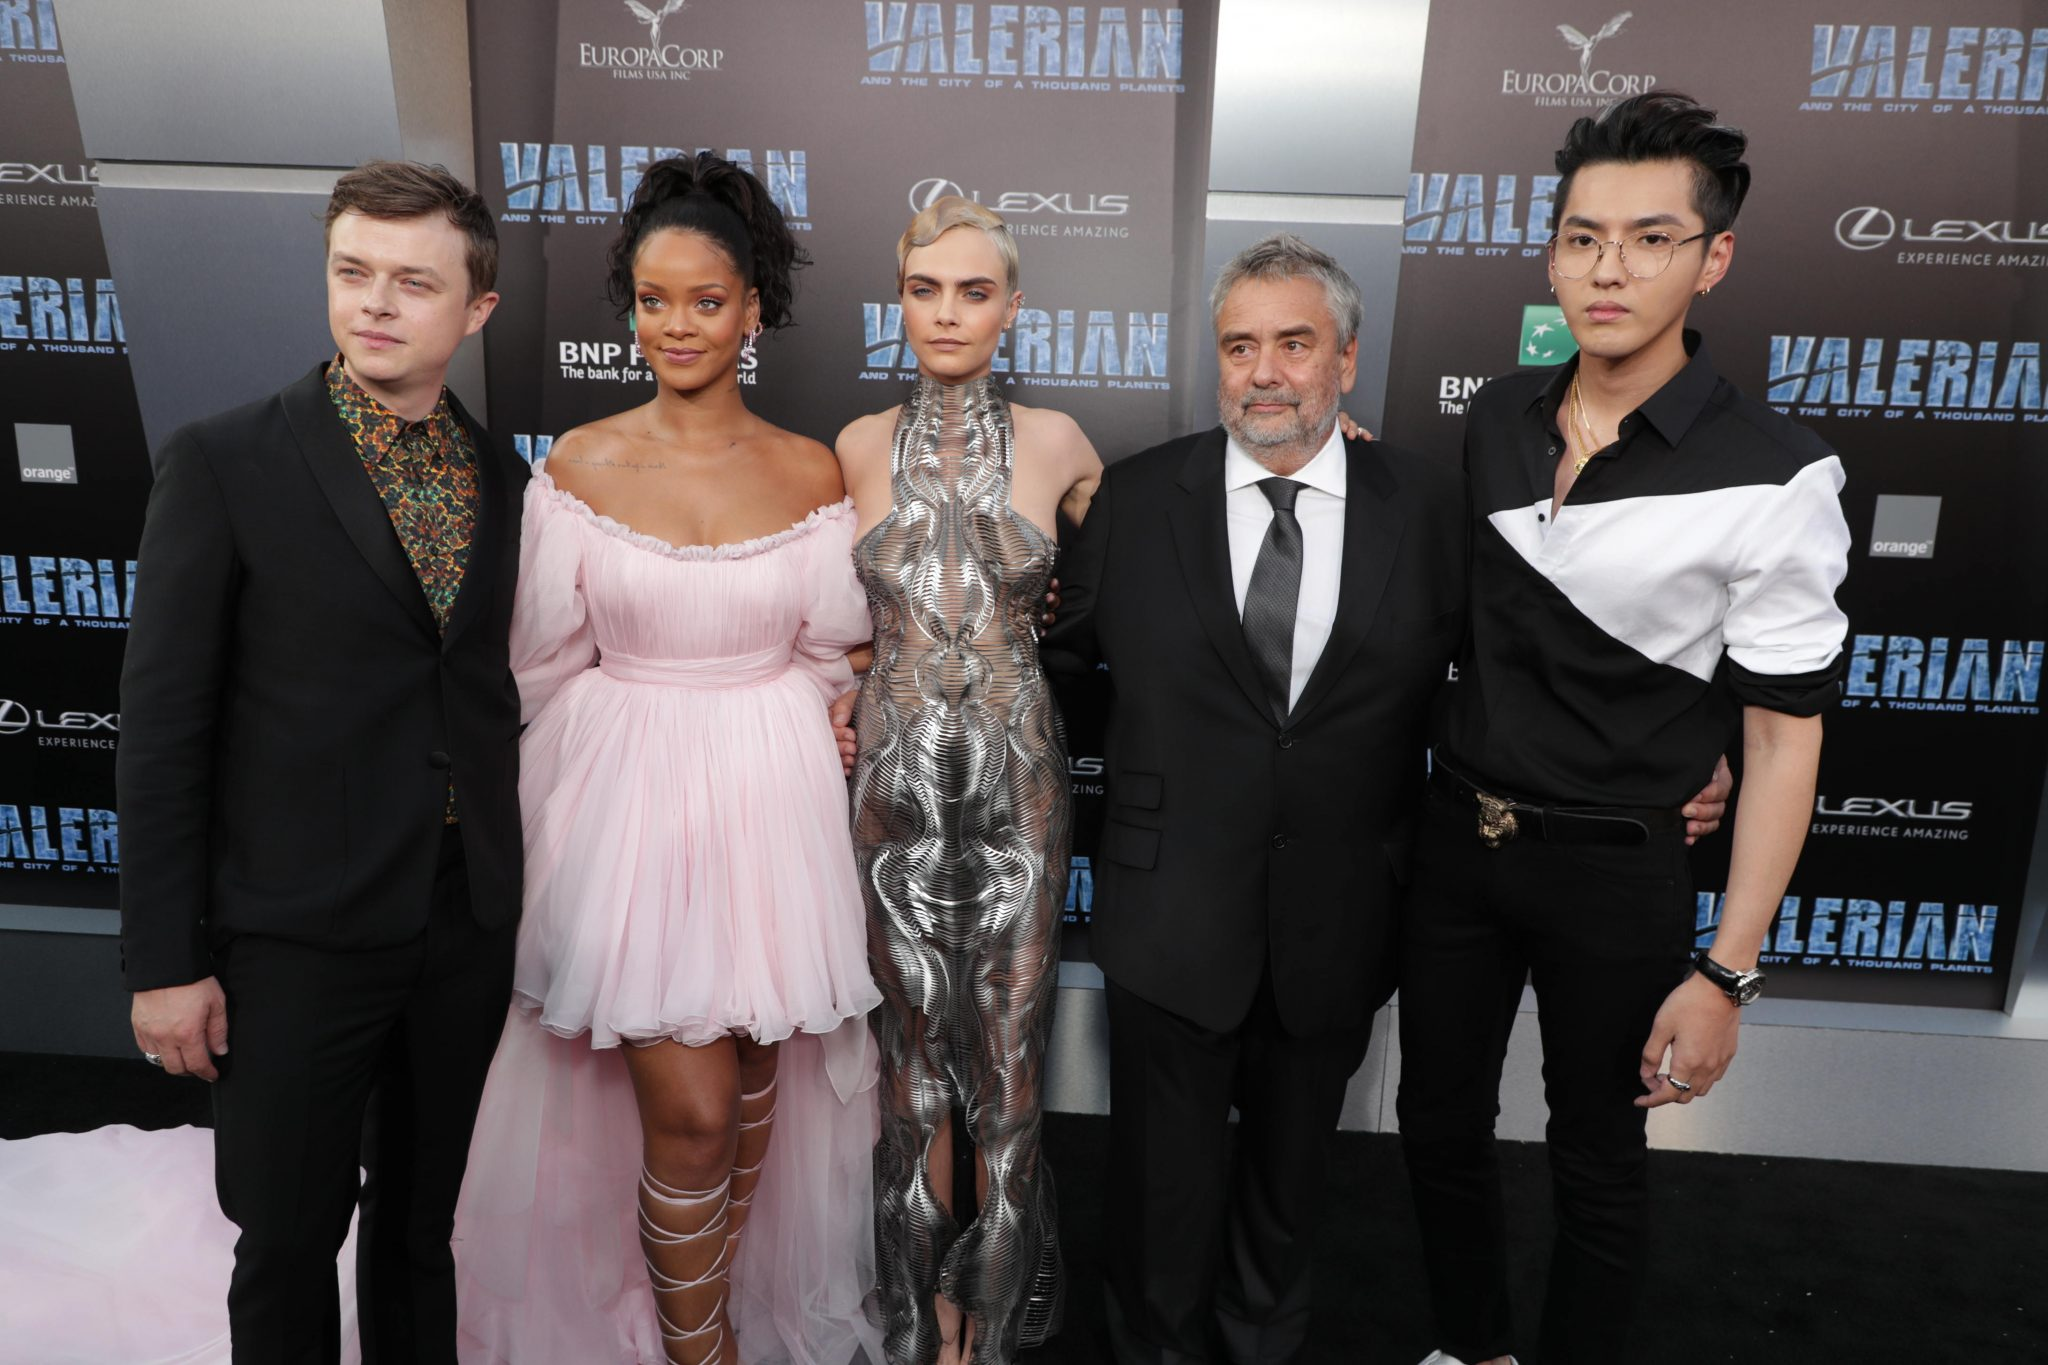 Valerian And the City Of A Thousand Planets World Premiere